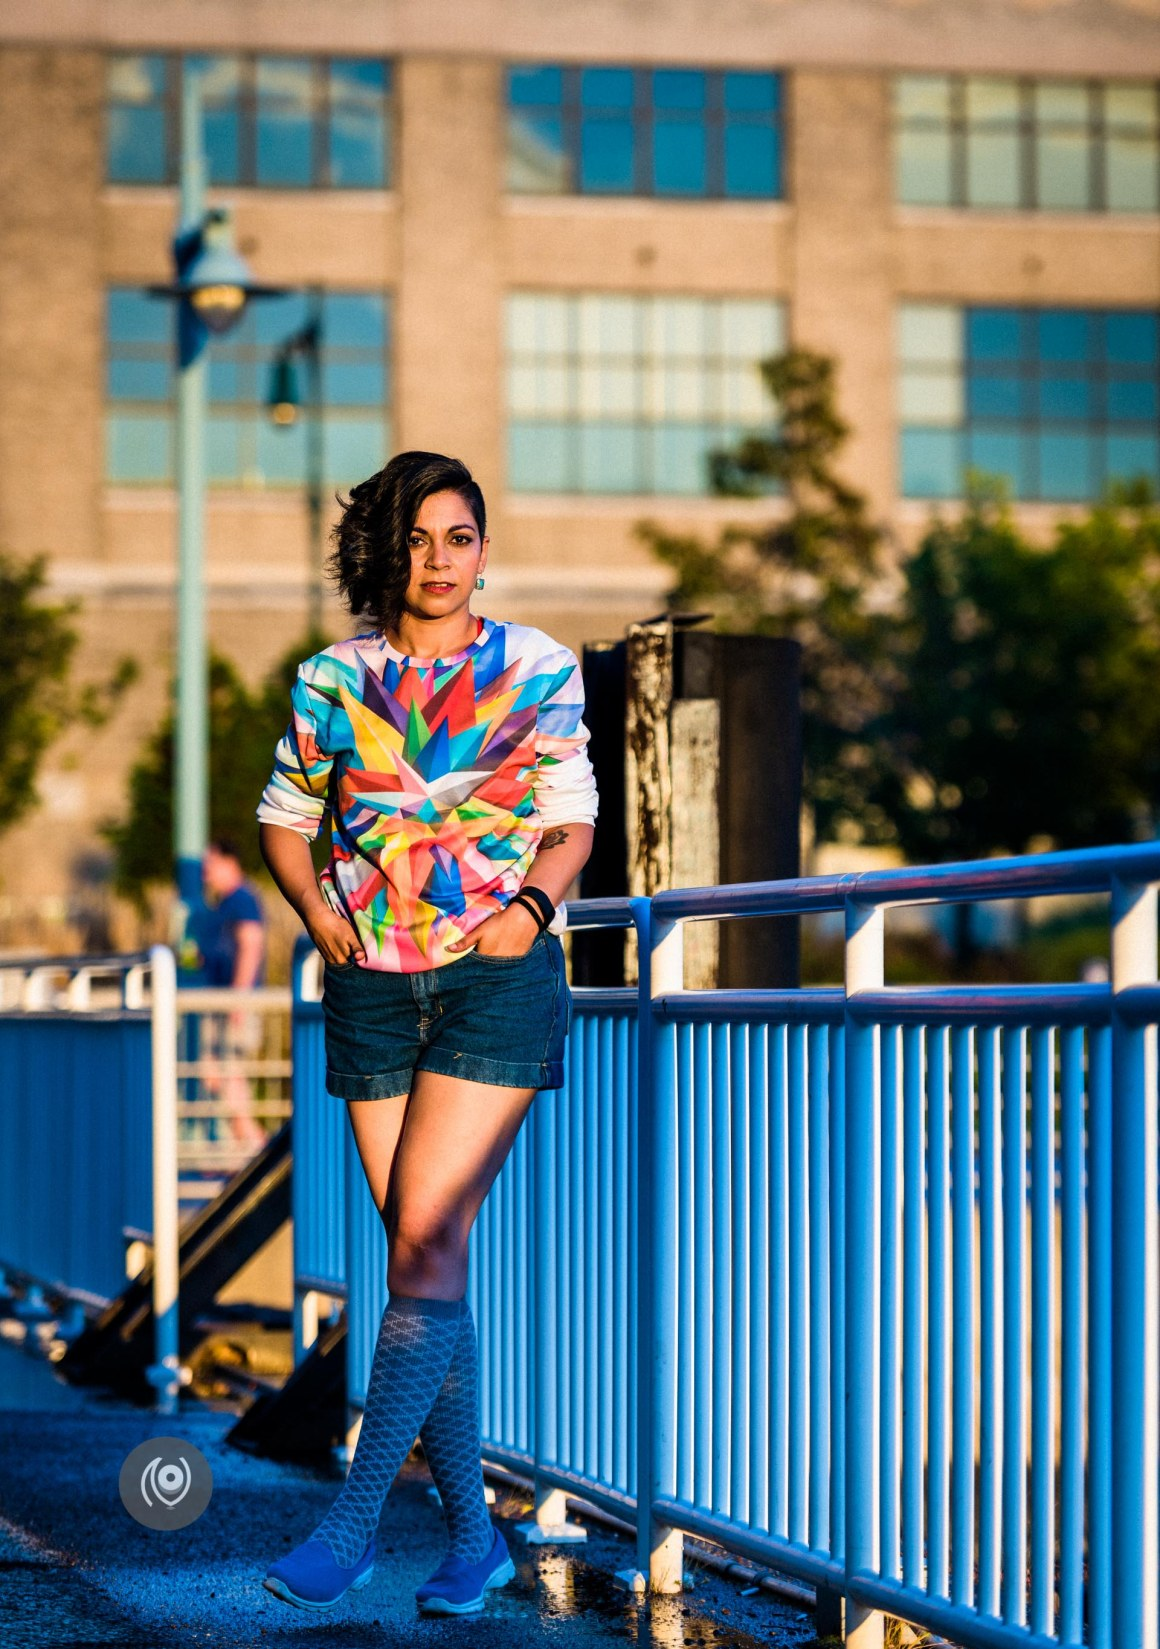 Live Heroes Okudart #NYFW #CoverUp 57 #EyesForNewYork #REDHUxNYC Naina.co Luxury & Lifestyle, Photographer Storyteller, Blogger